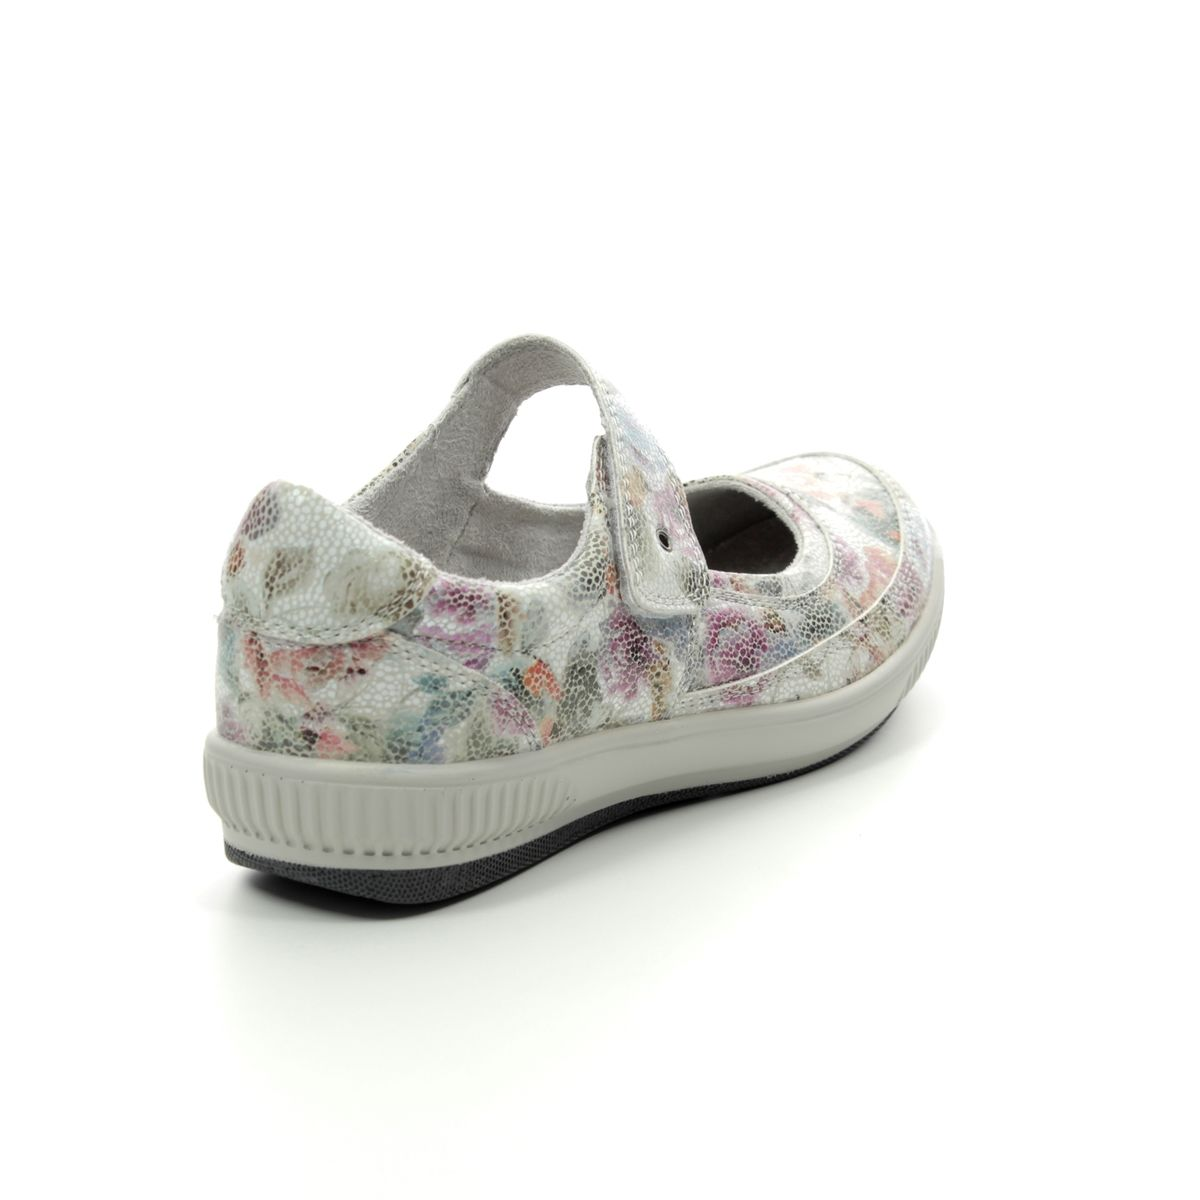 Heavenly Feet 9107-57 Madonna Floral Print Womens Mary Jane Shoes